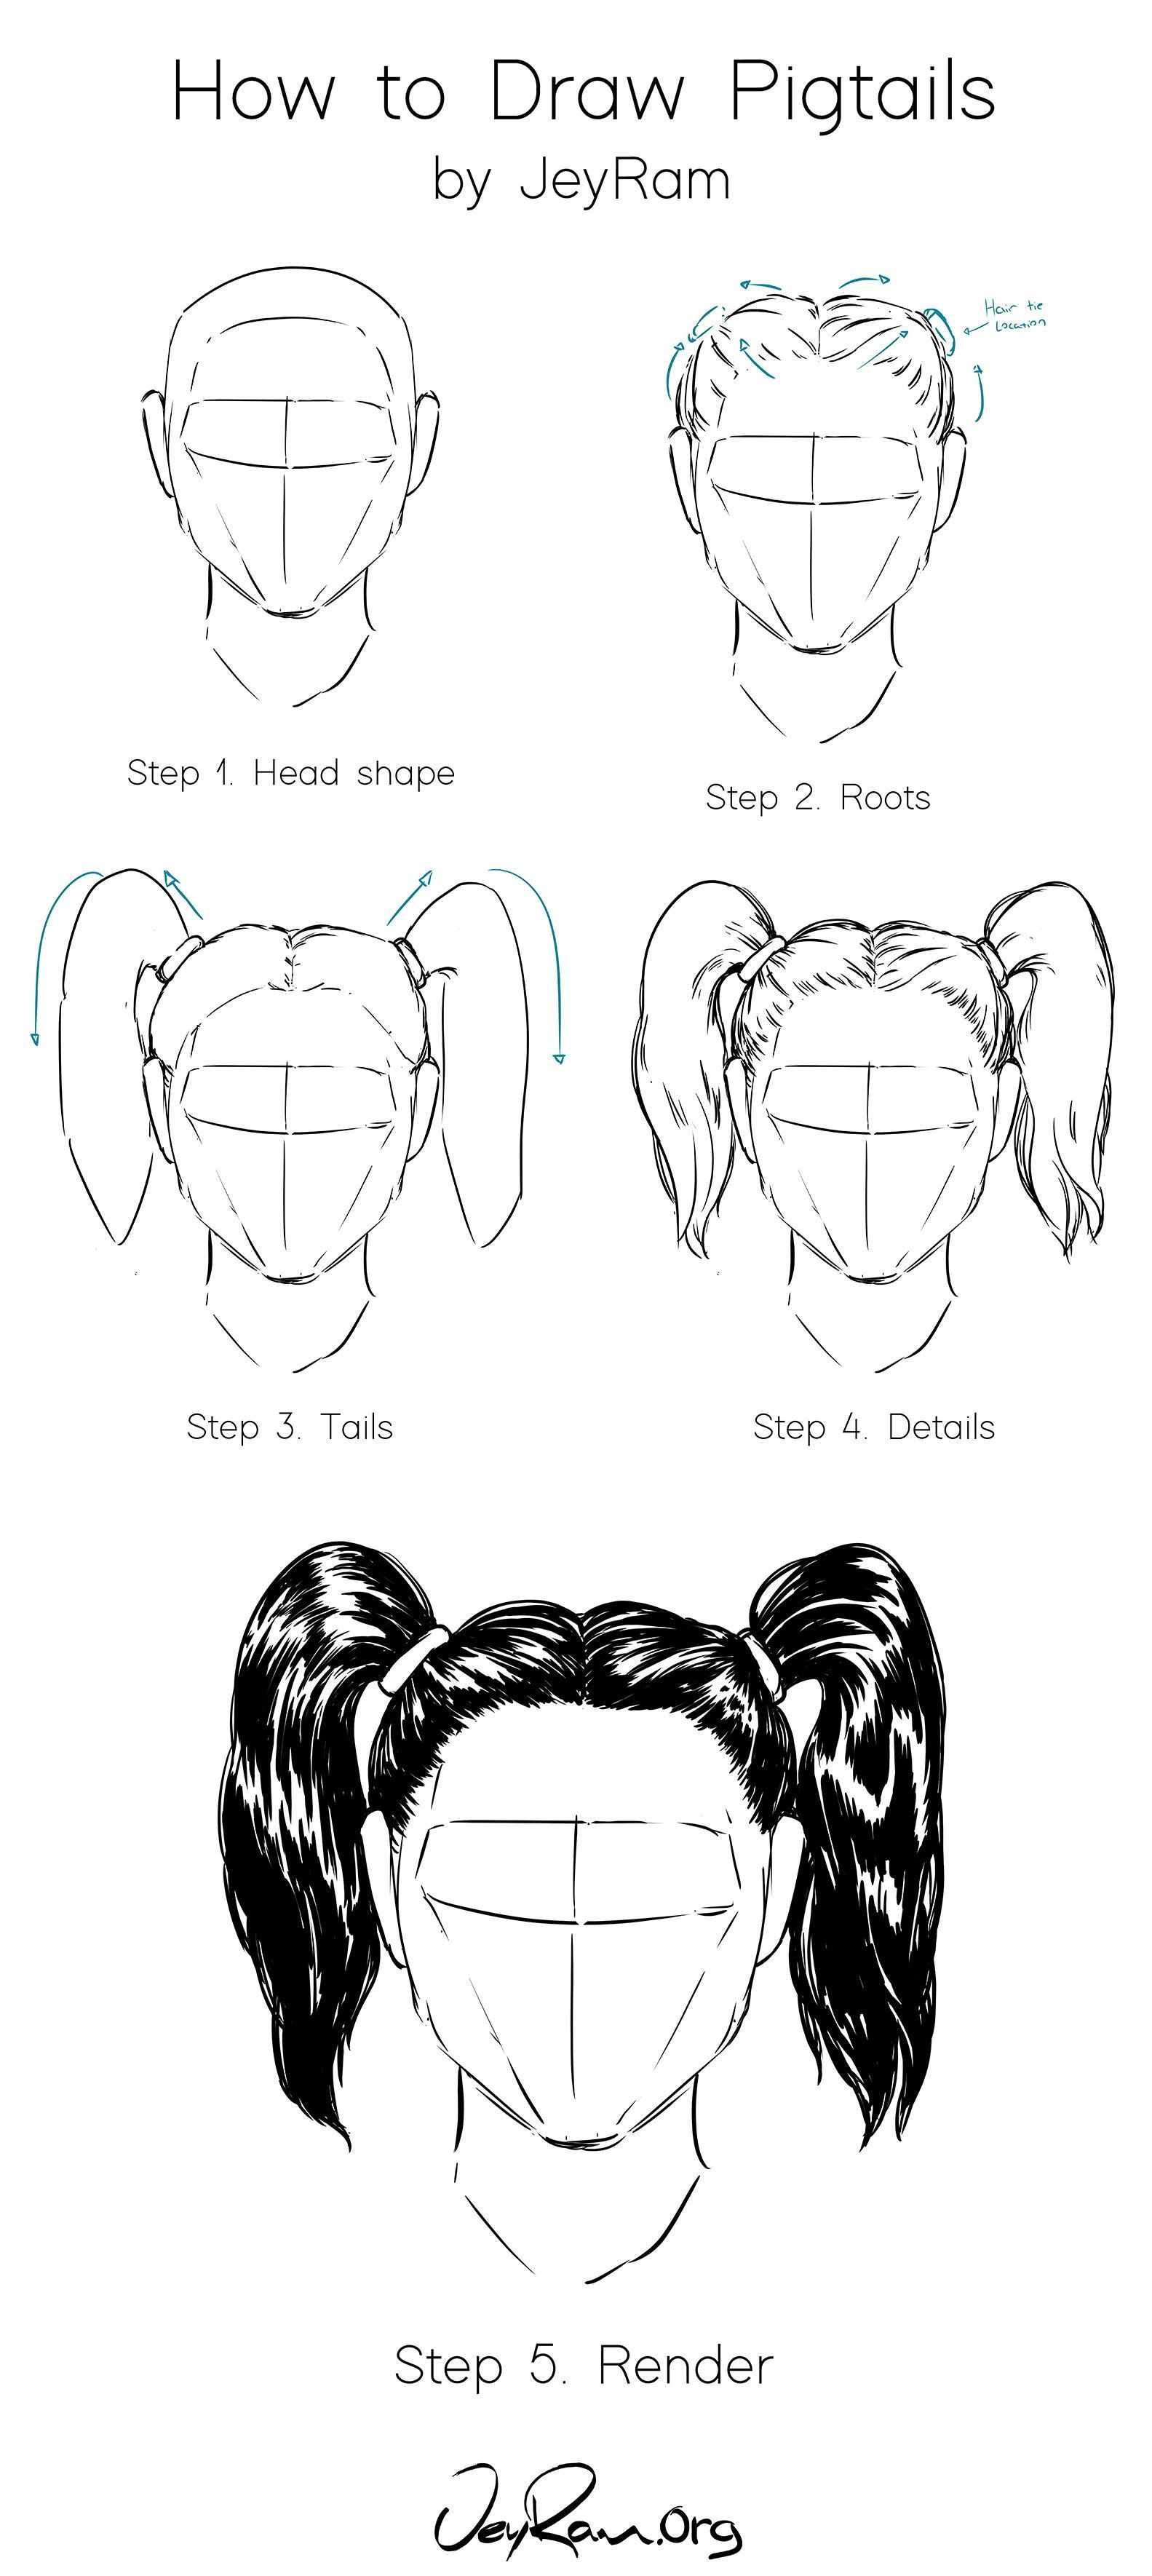 How To Draw Hair In Pigtails Step By Step Tutorial For Beginners How To Draw Hair Drawing Tutorial Face Pigtails